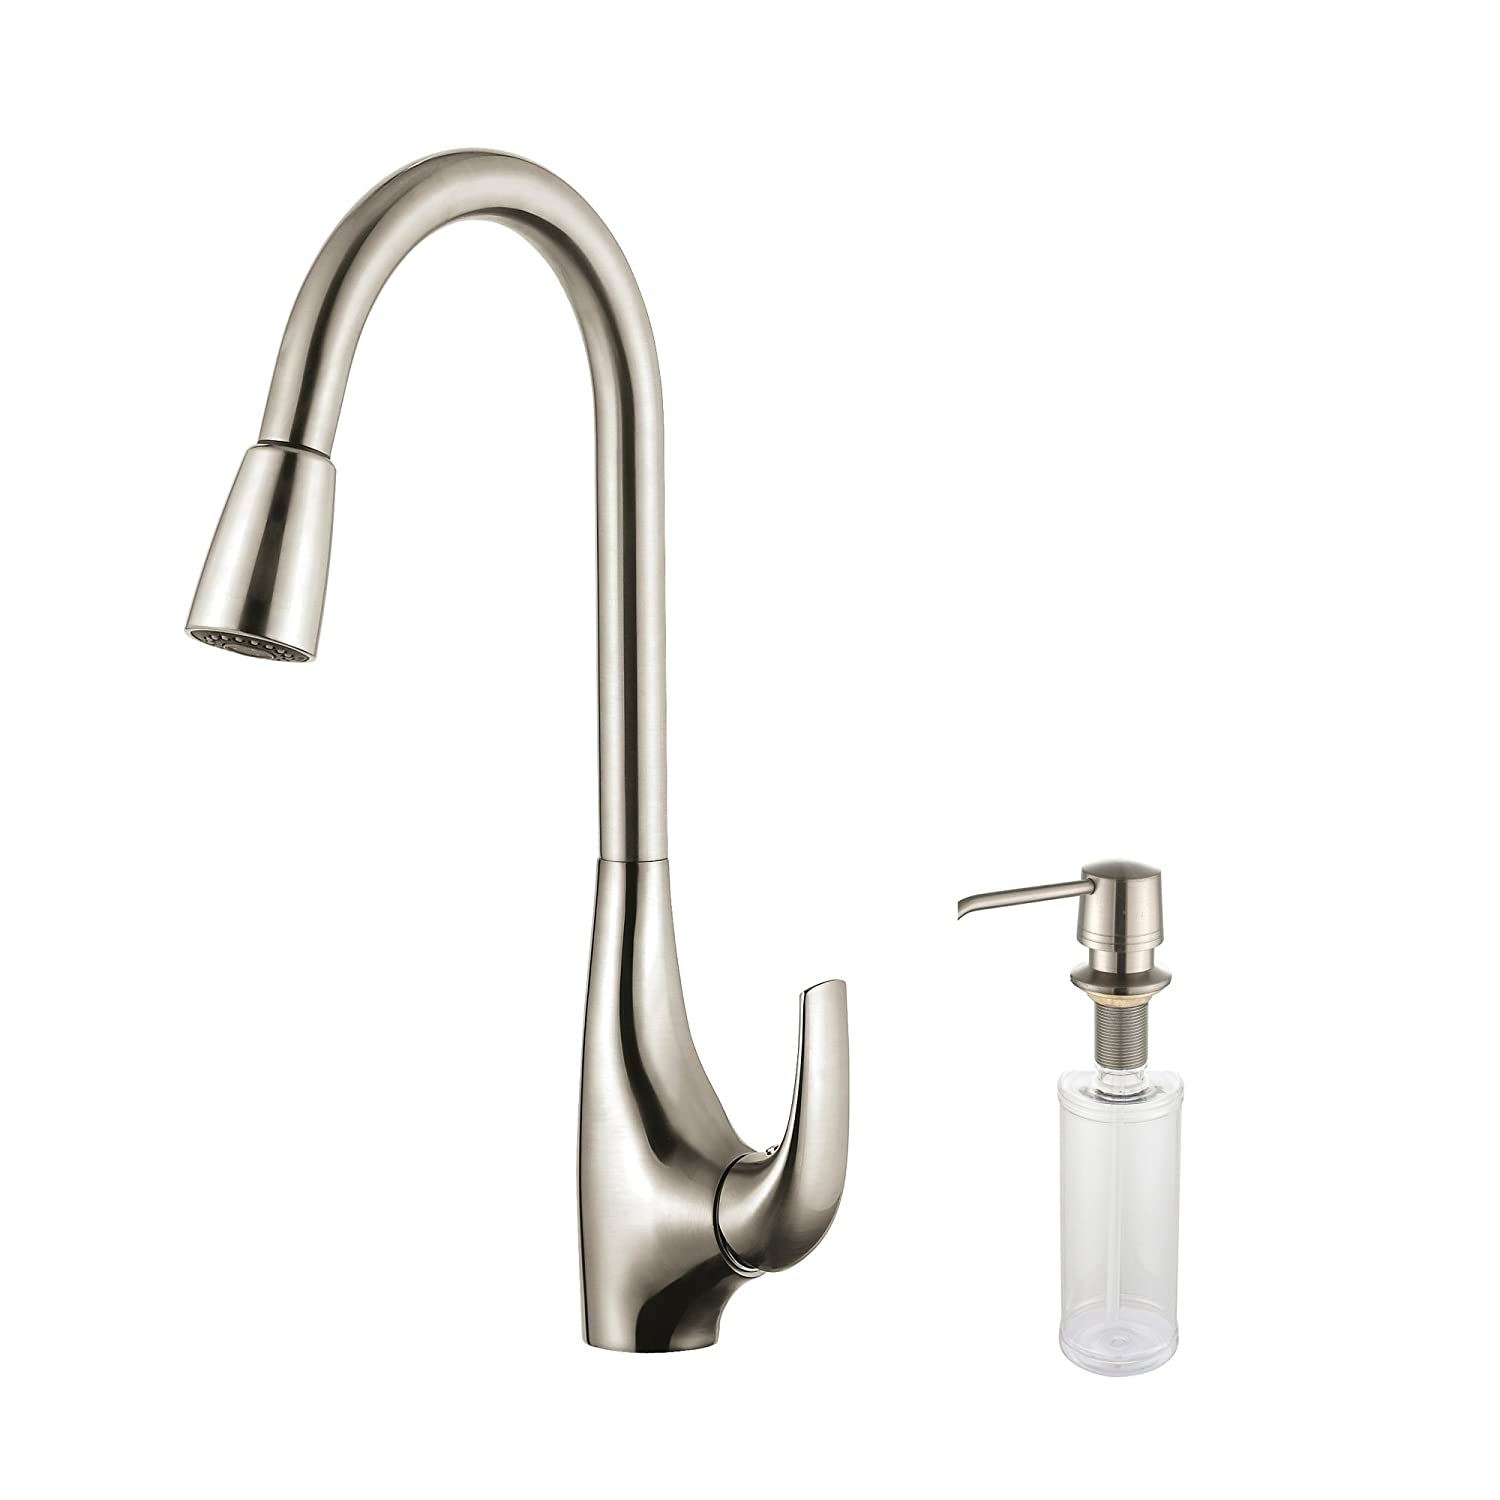 kraus kpf 1621 ksd 30ss single lever pull down kitchen faucet kraus kpf 1621 ksd 30ss single lever pull down kitchen faucet stainless steel finish and soap dispenser amazon com